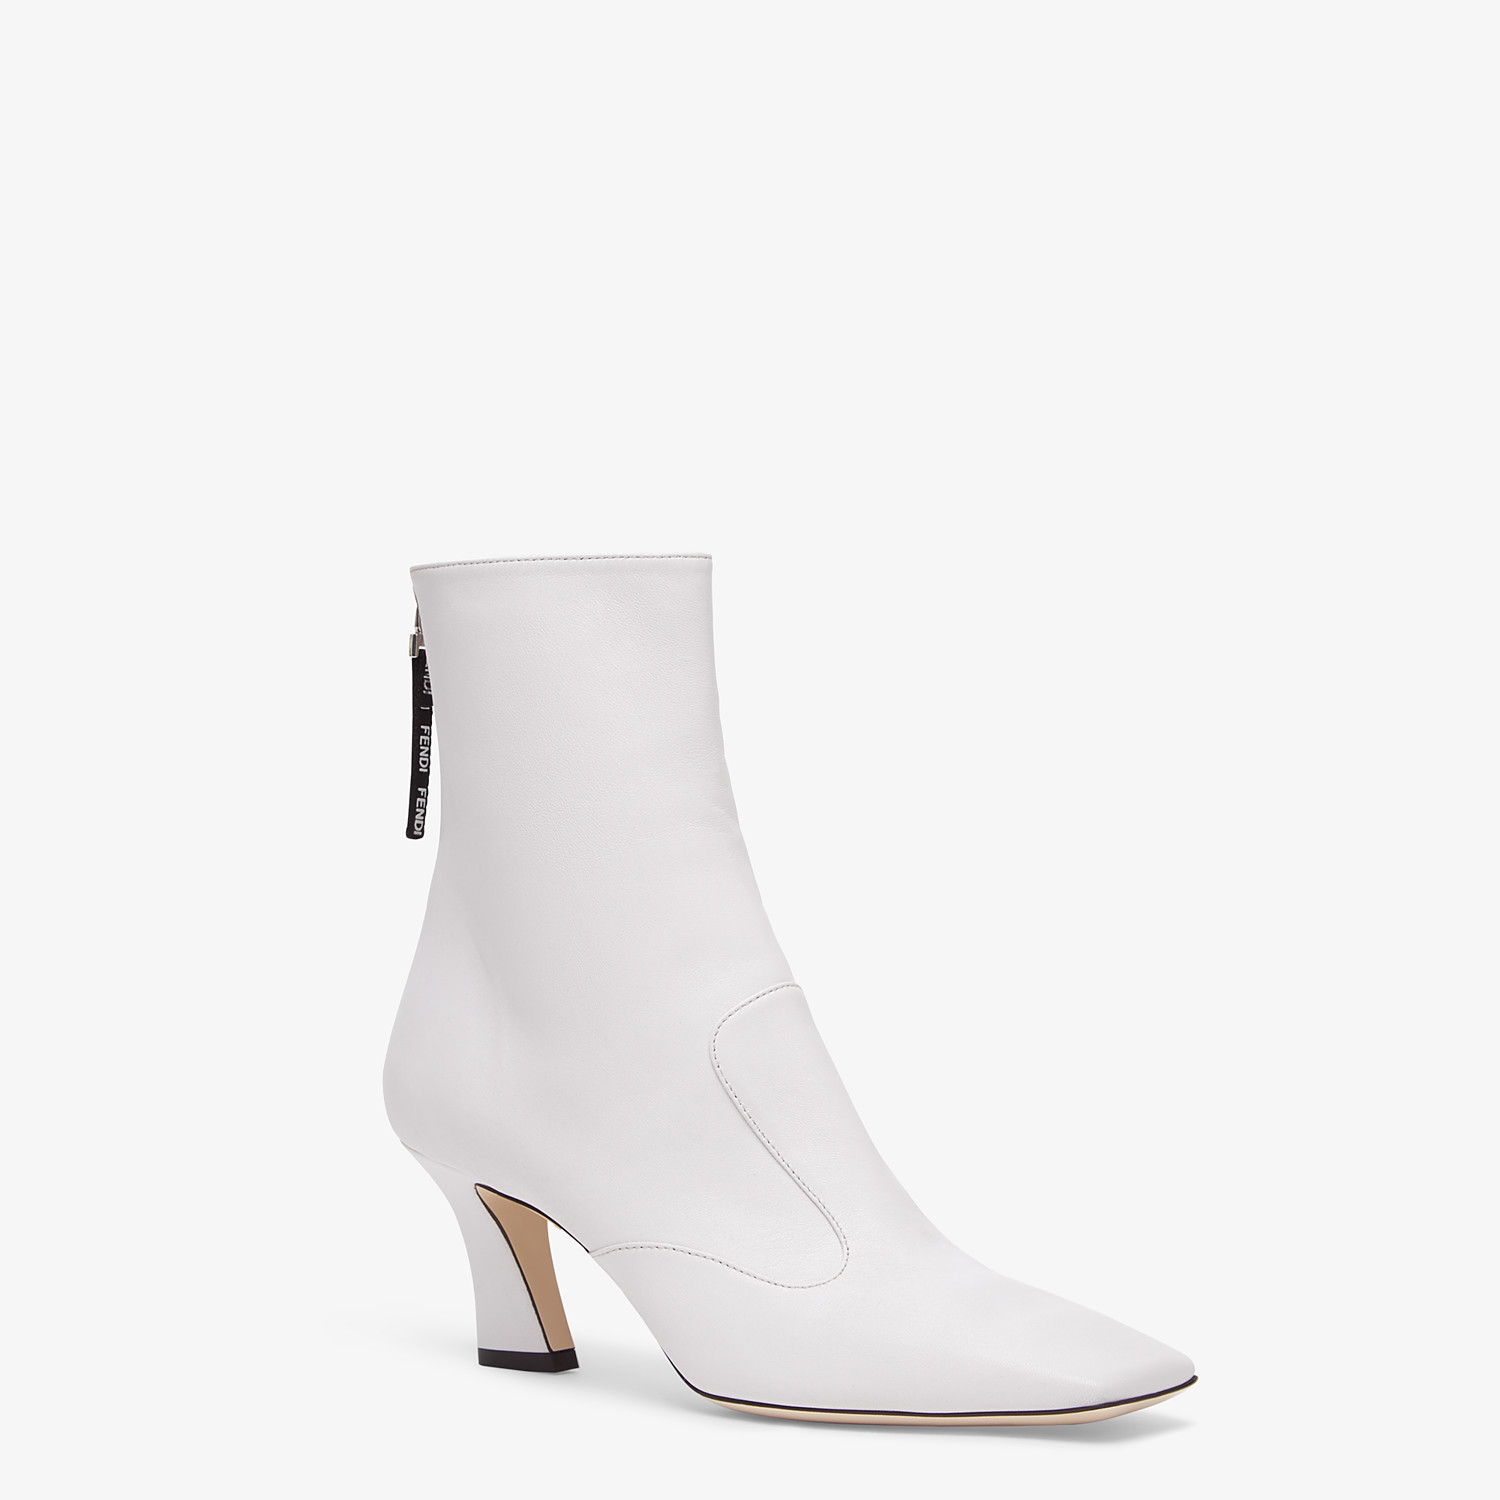 FENDI ANKLE BOOTS - White nappa leather booties - view 2 detail